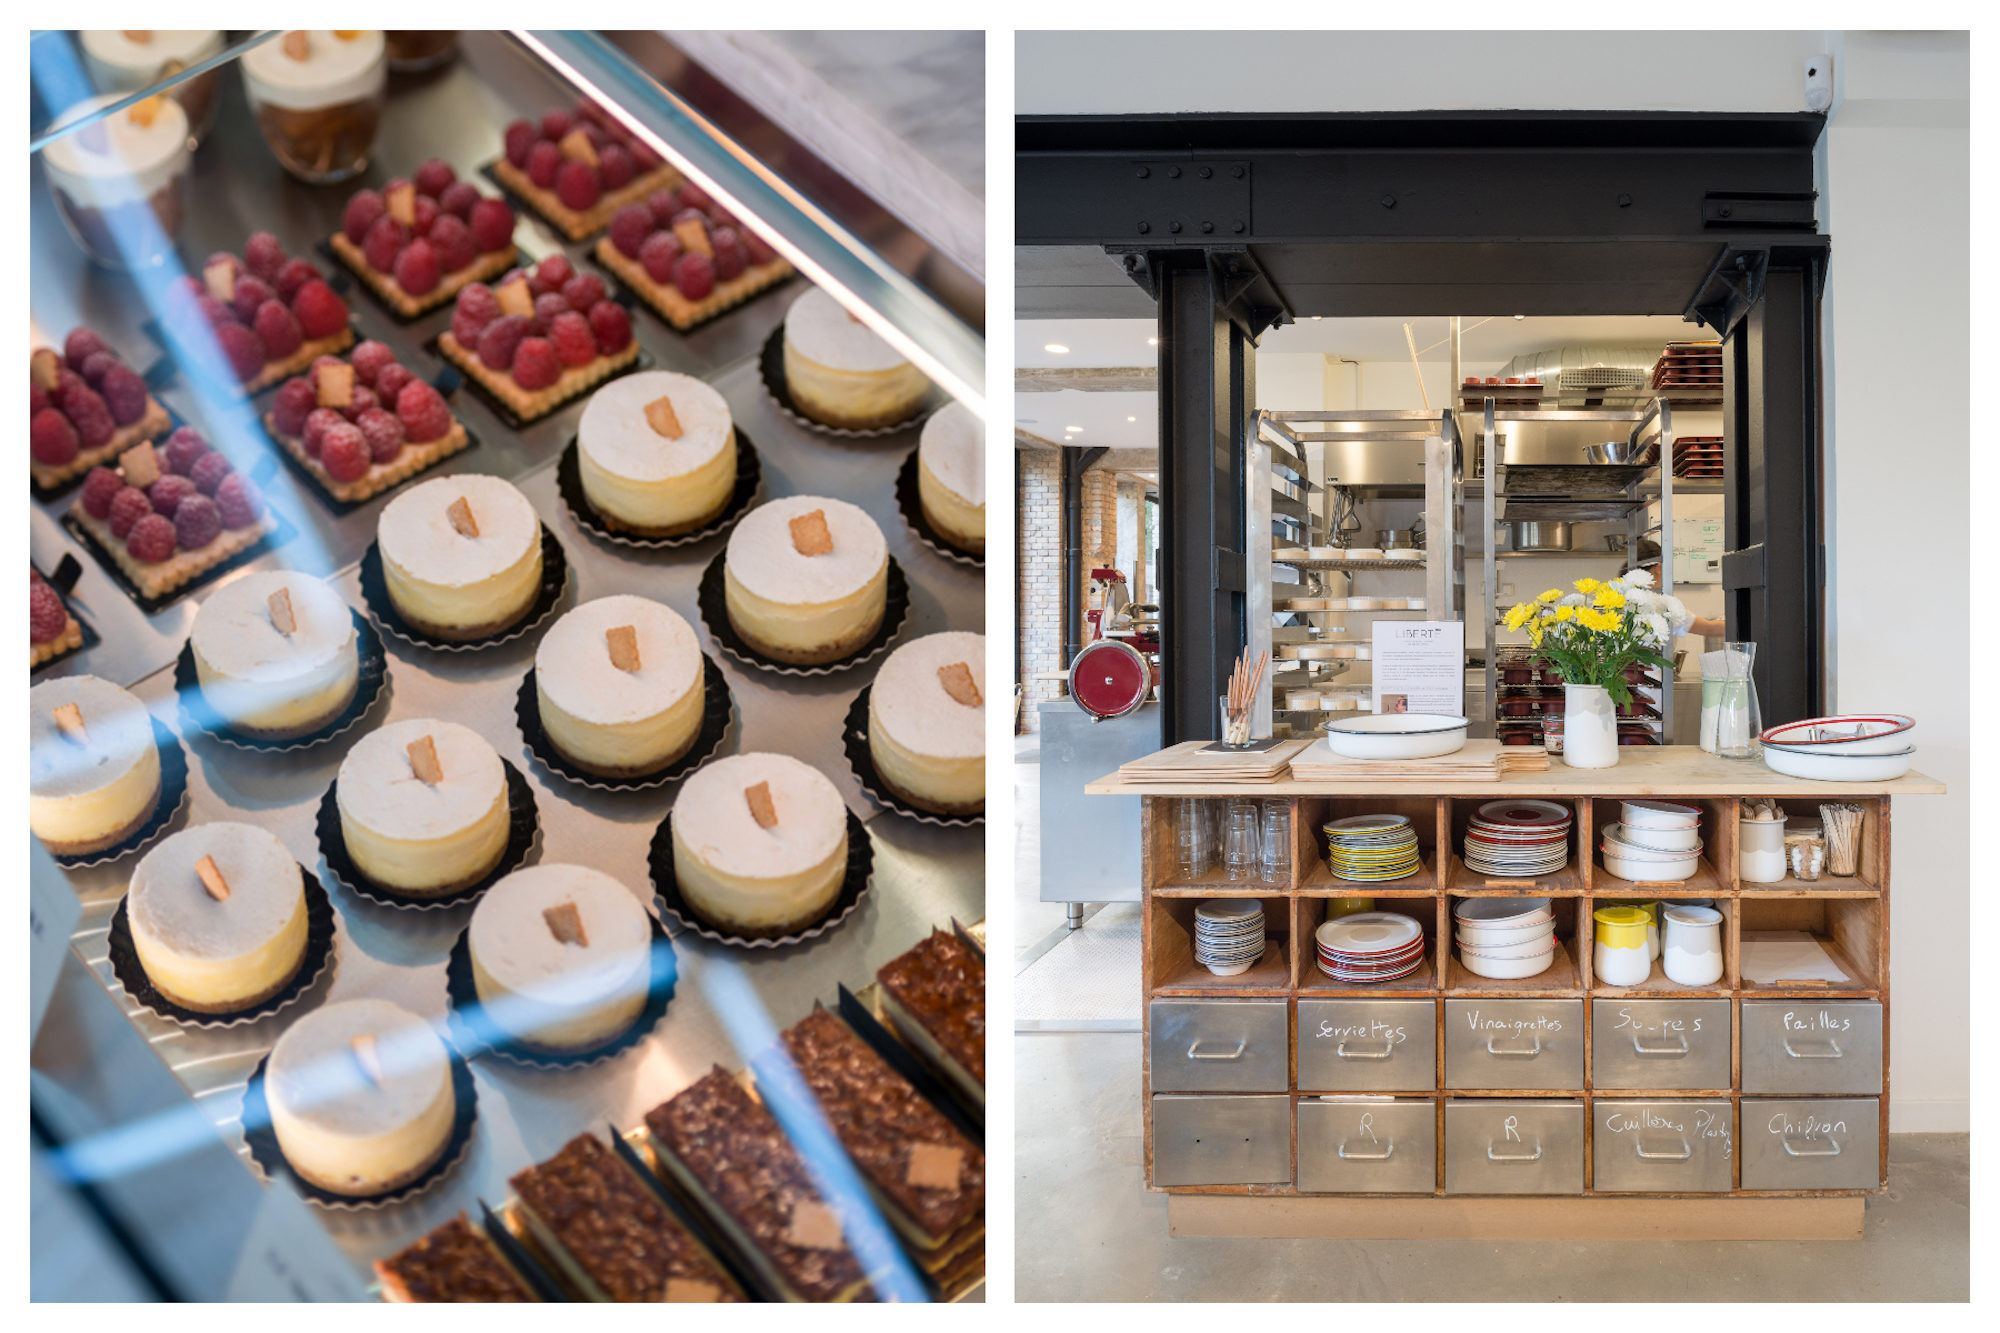 HiP Paris Blog checks out Benoit Castel boulangerie